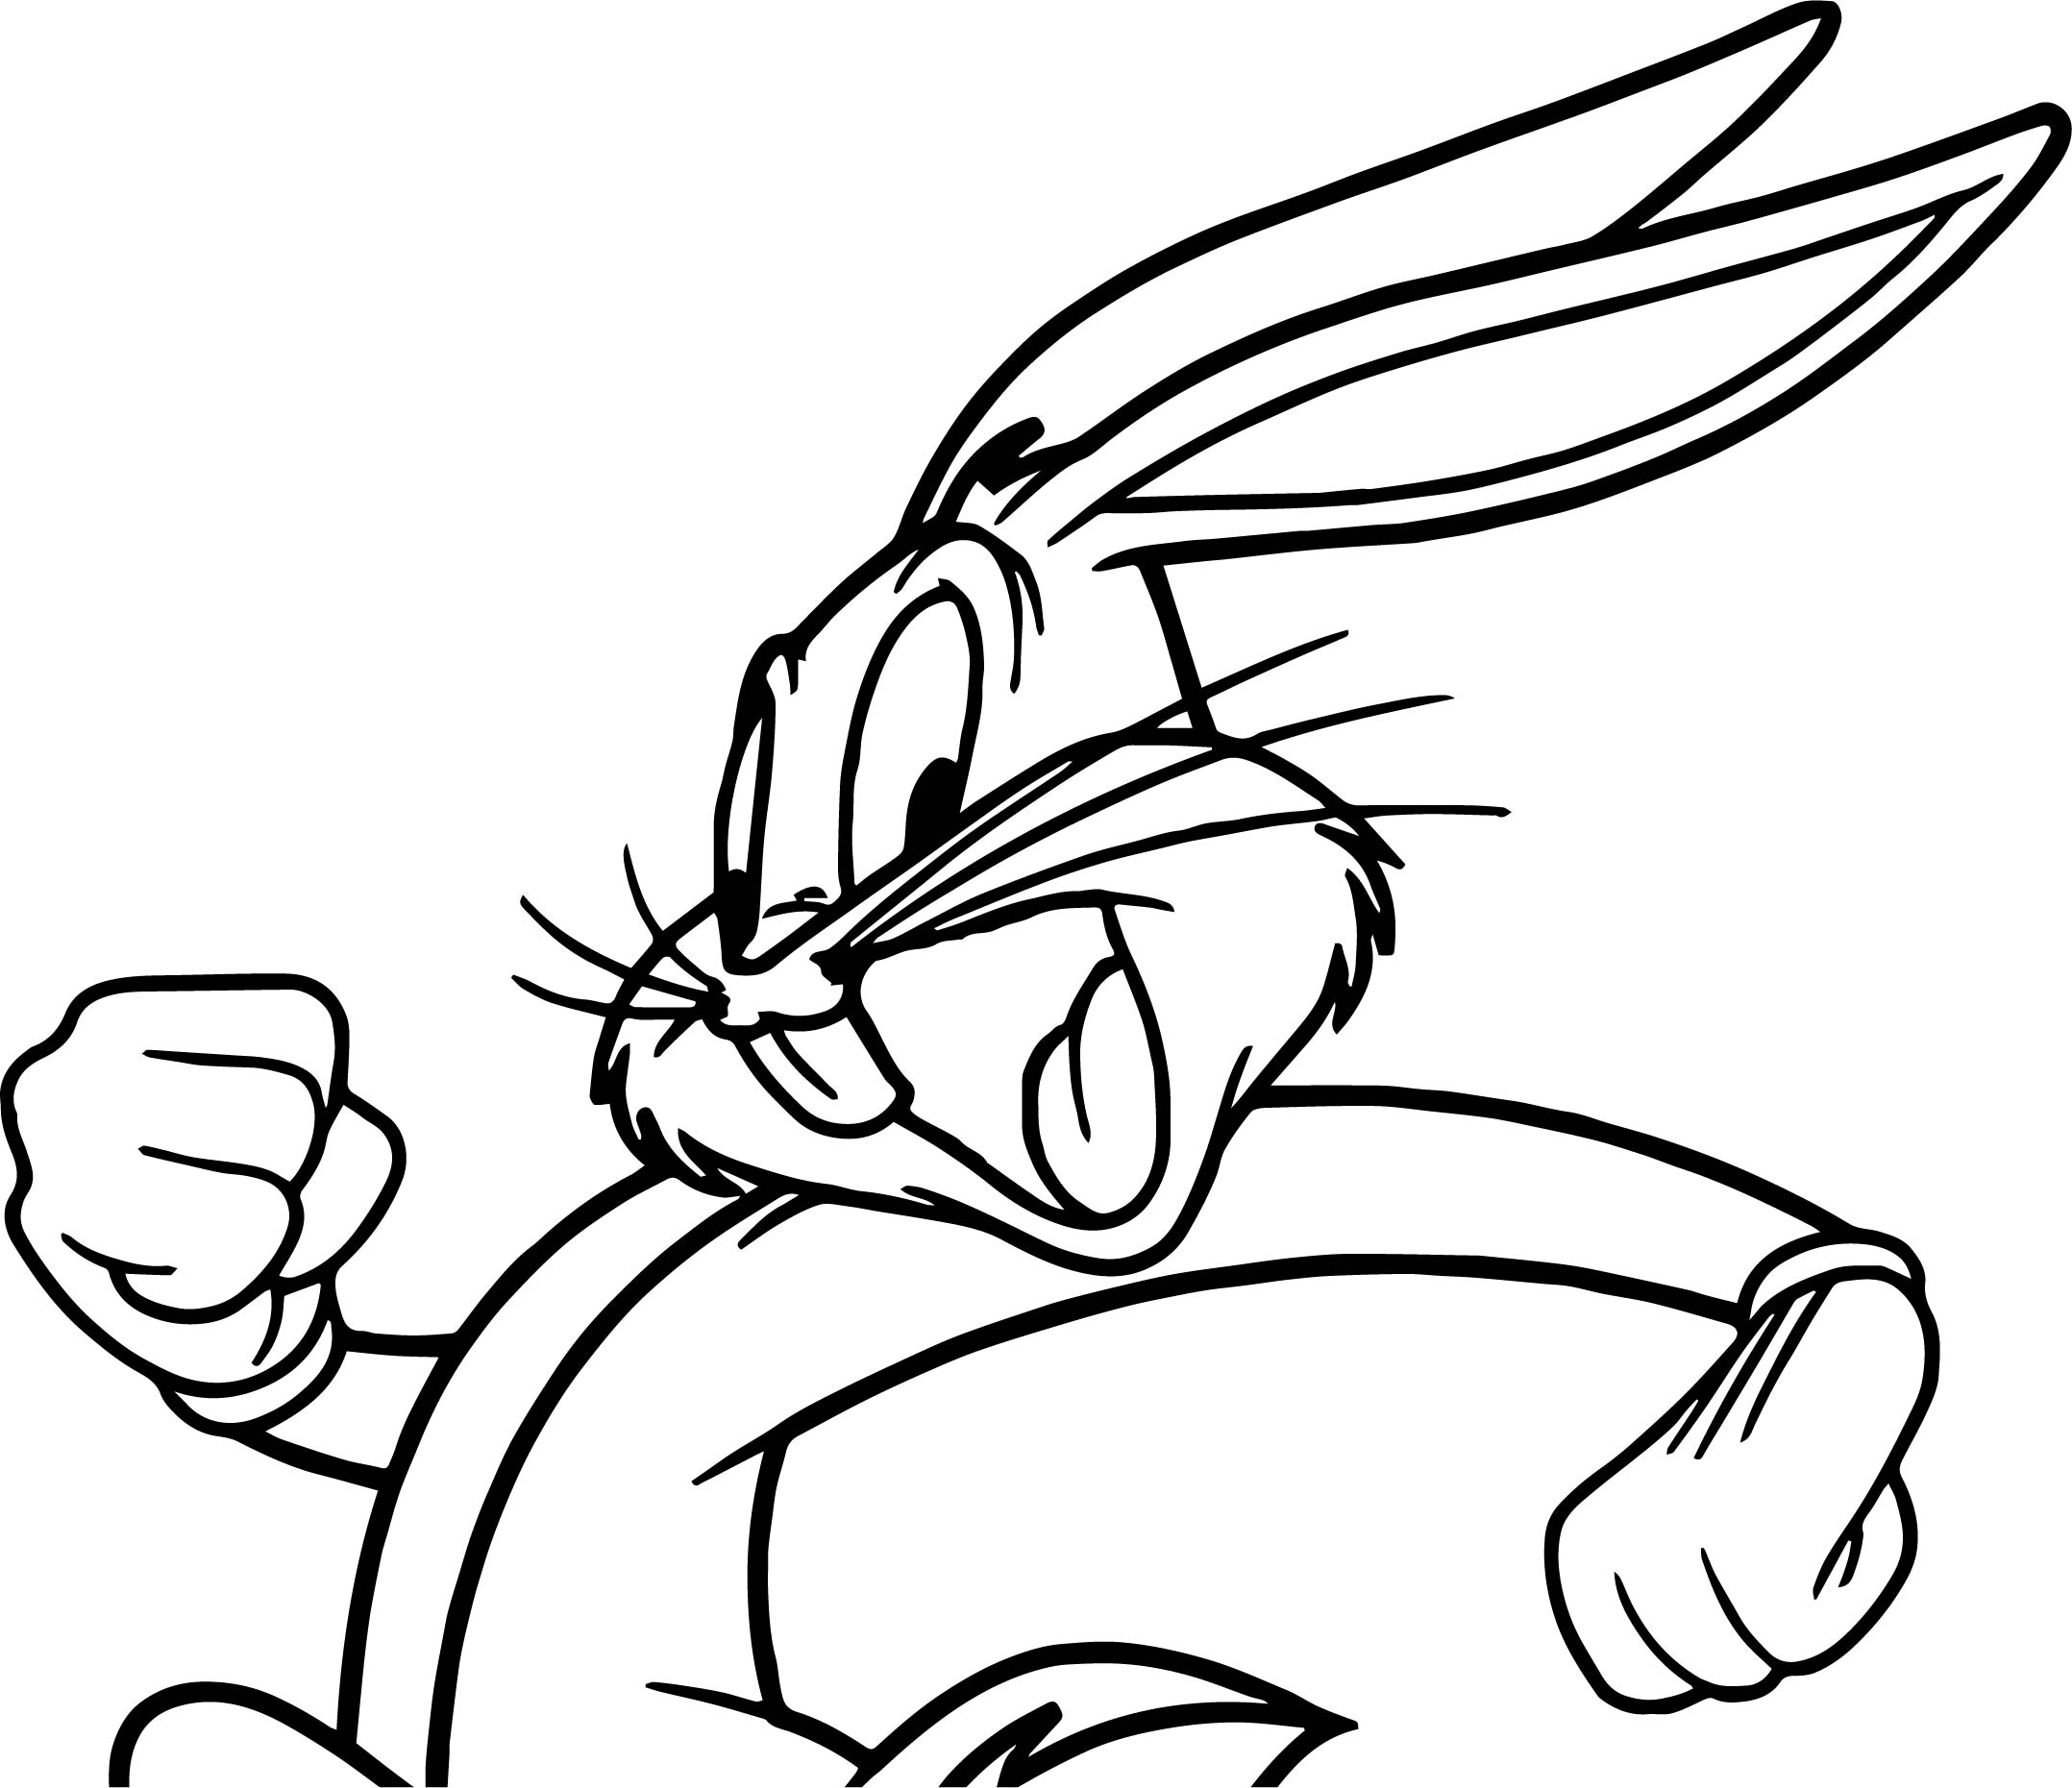 the looney tunes bugs bunny coloring page wecoloringpage